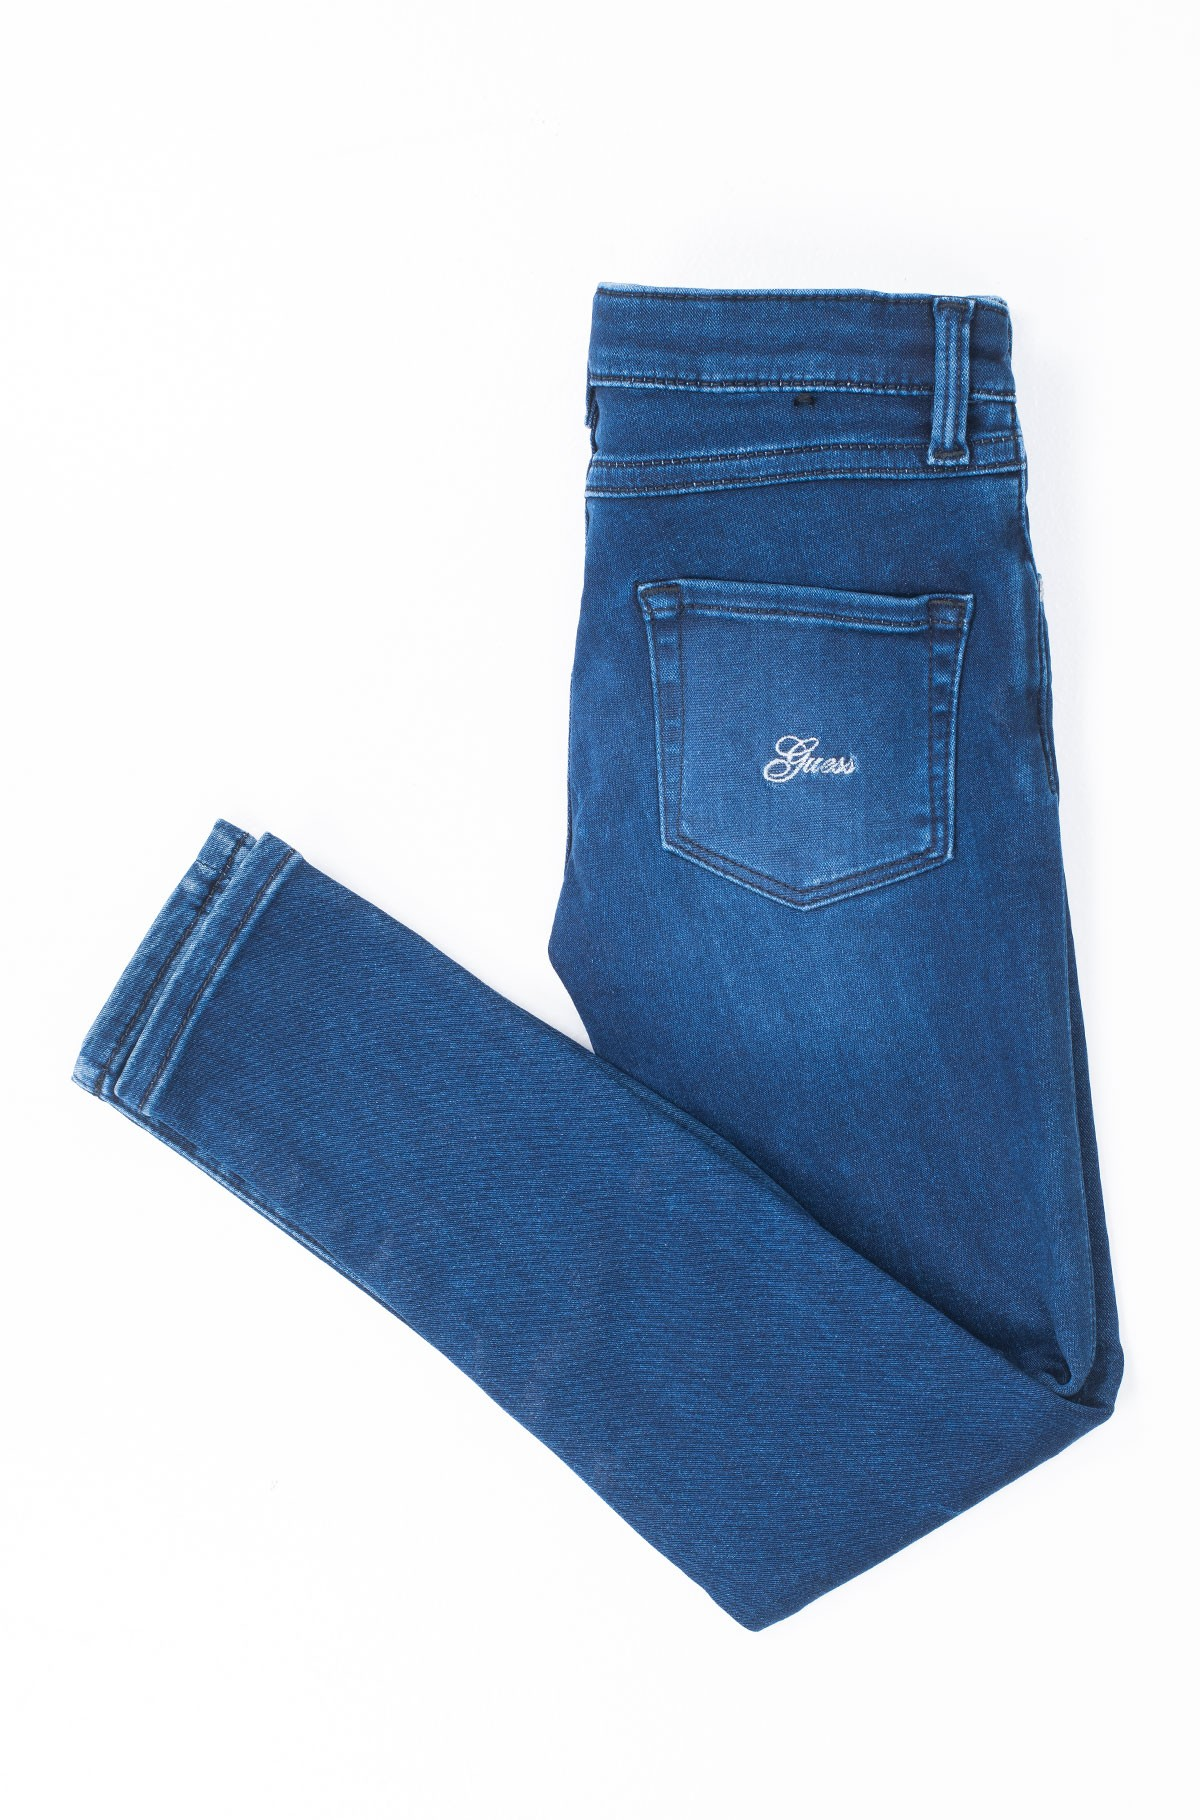 Children's jeans K74A08 D2R70-full-2